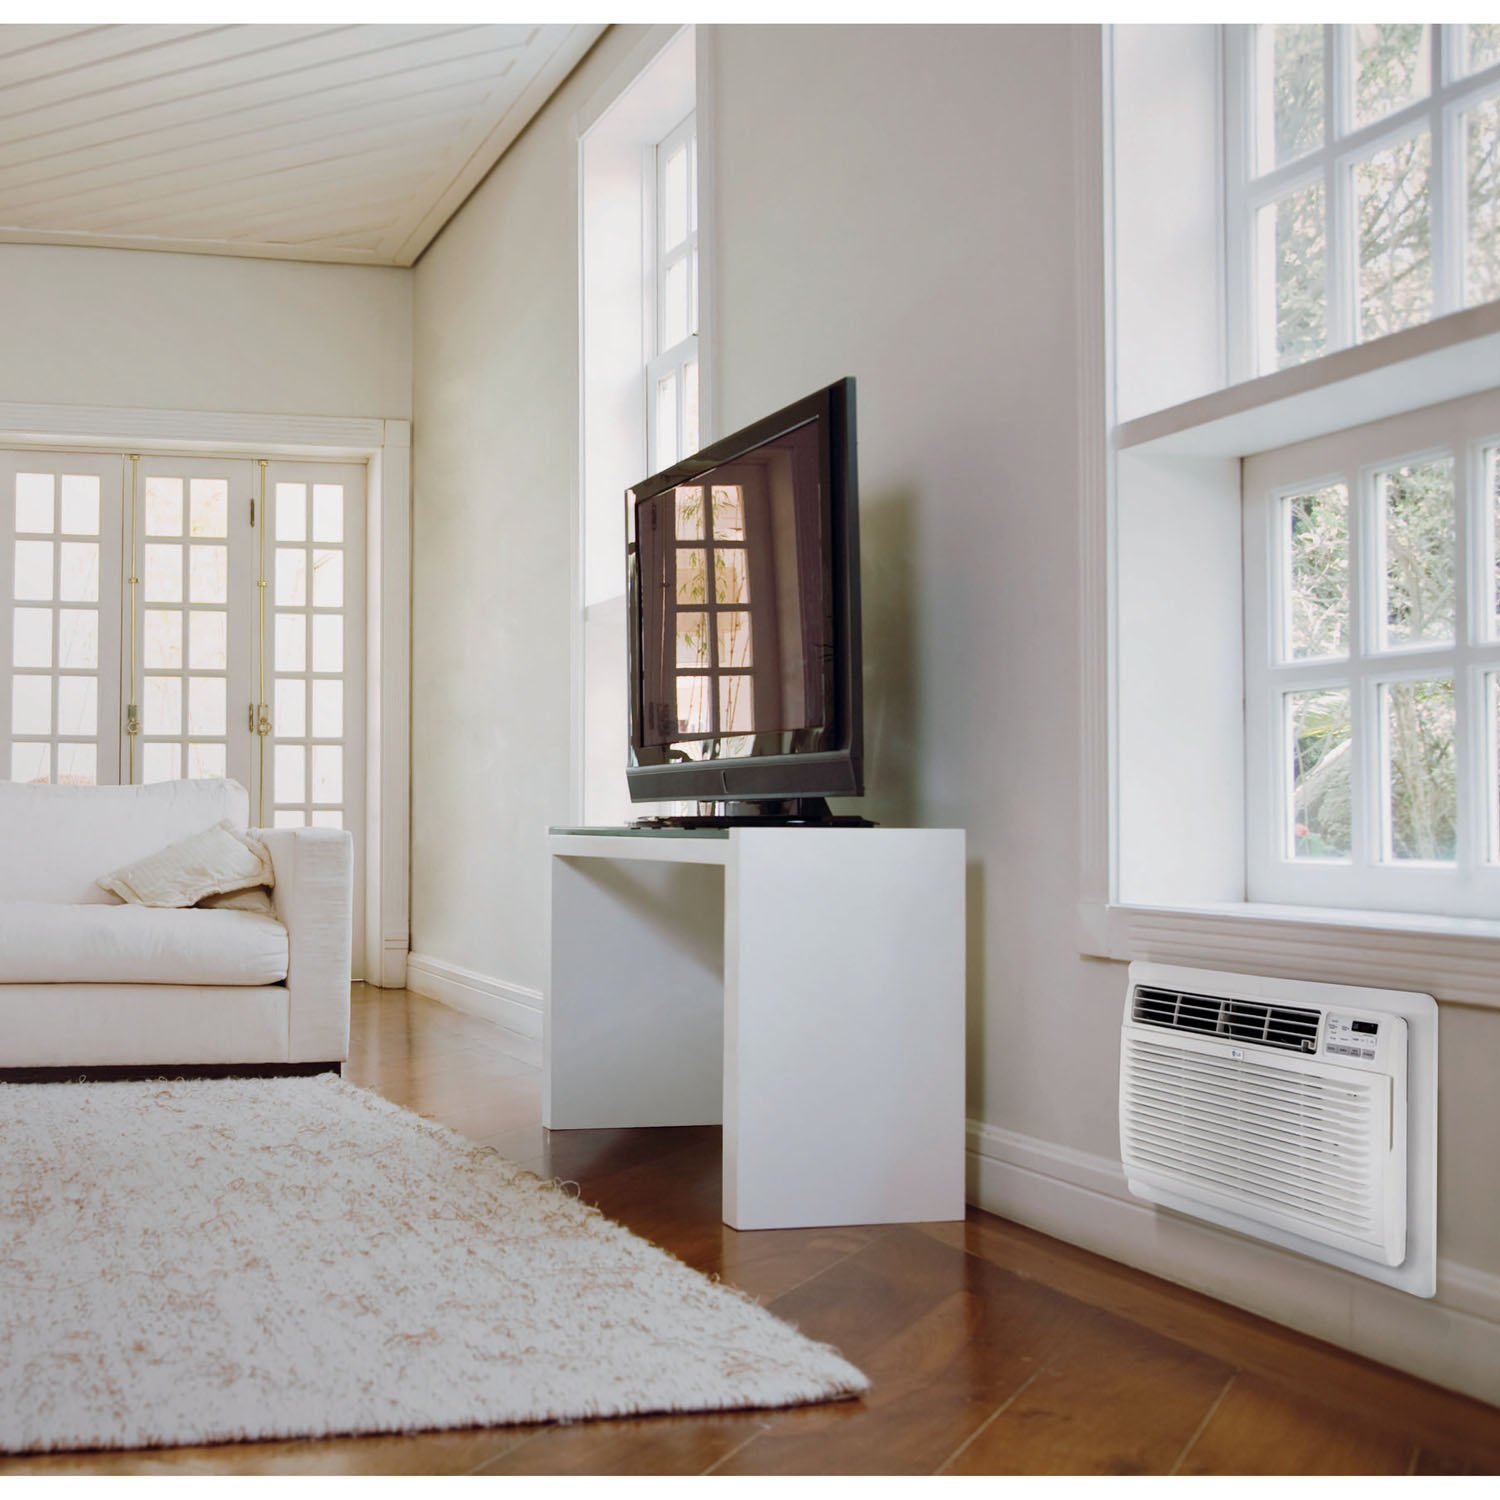 Through-the-Wall Air Conditioner with Remote Control